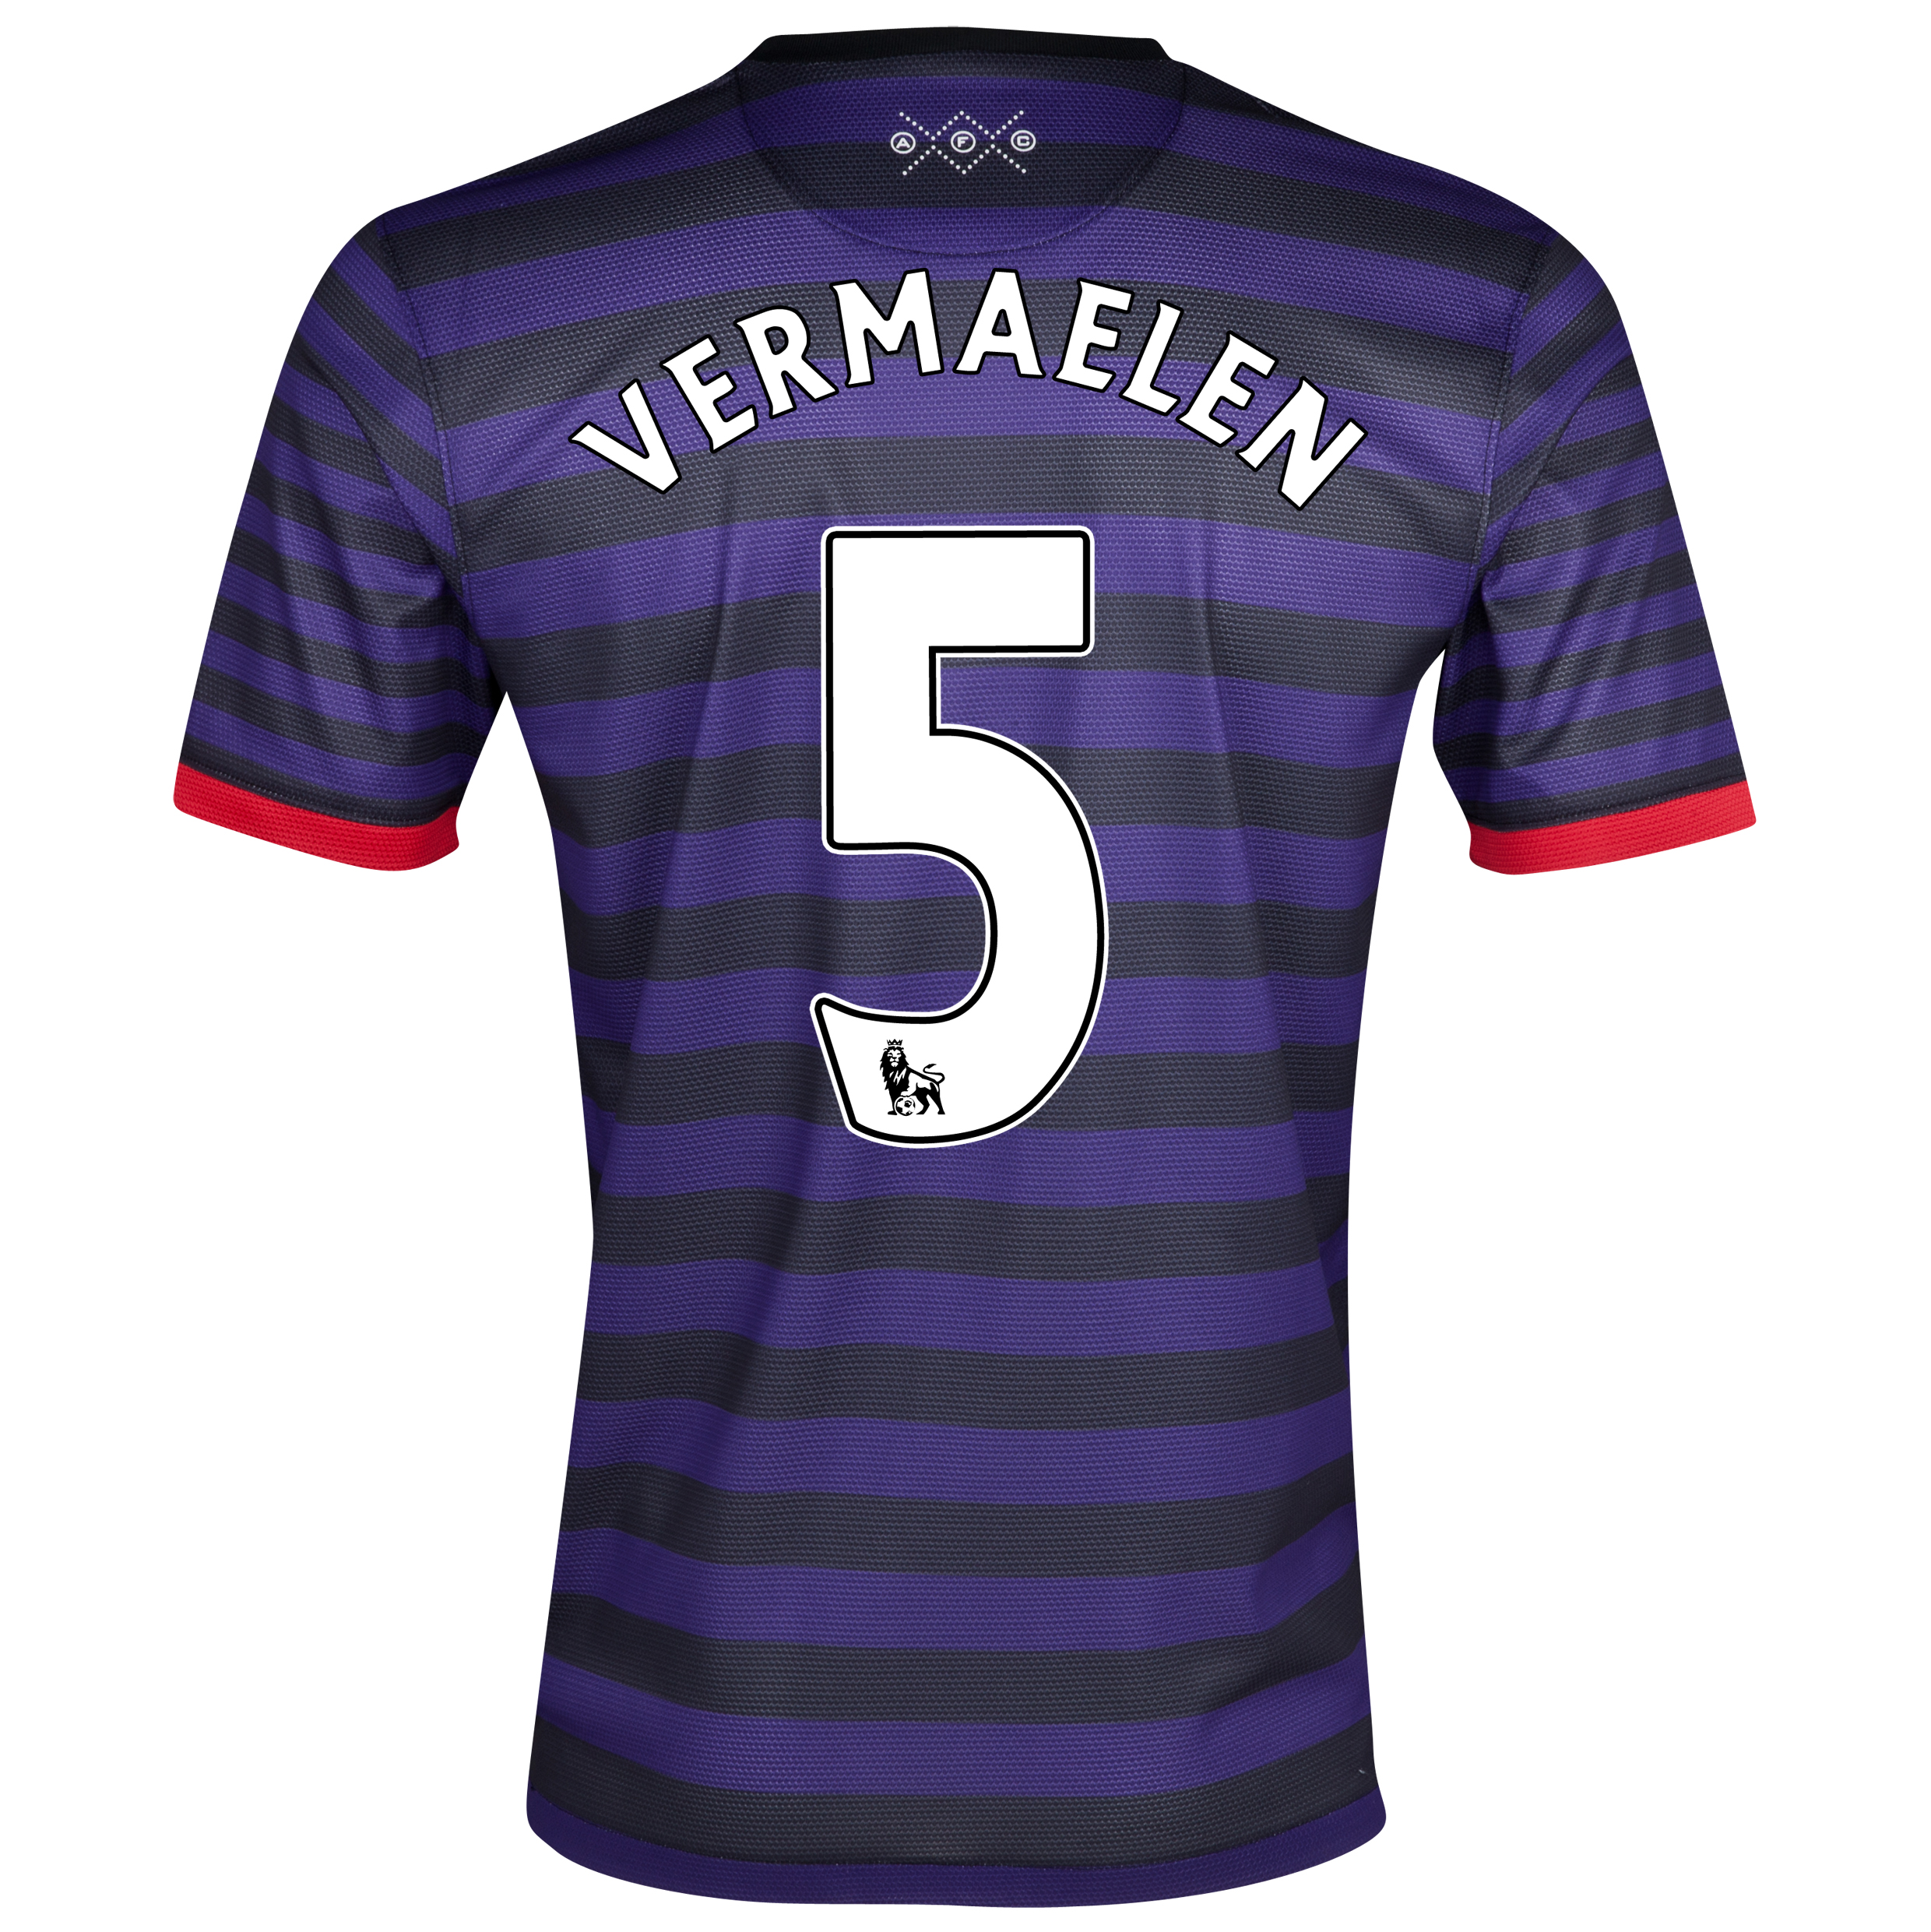 Arsenal Away Shirt  2012/13 - Youths with Vermaelen 5 printing